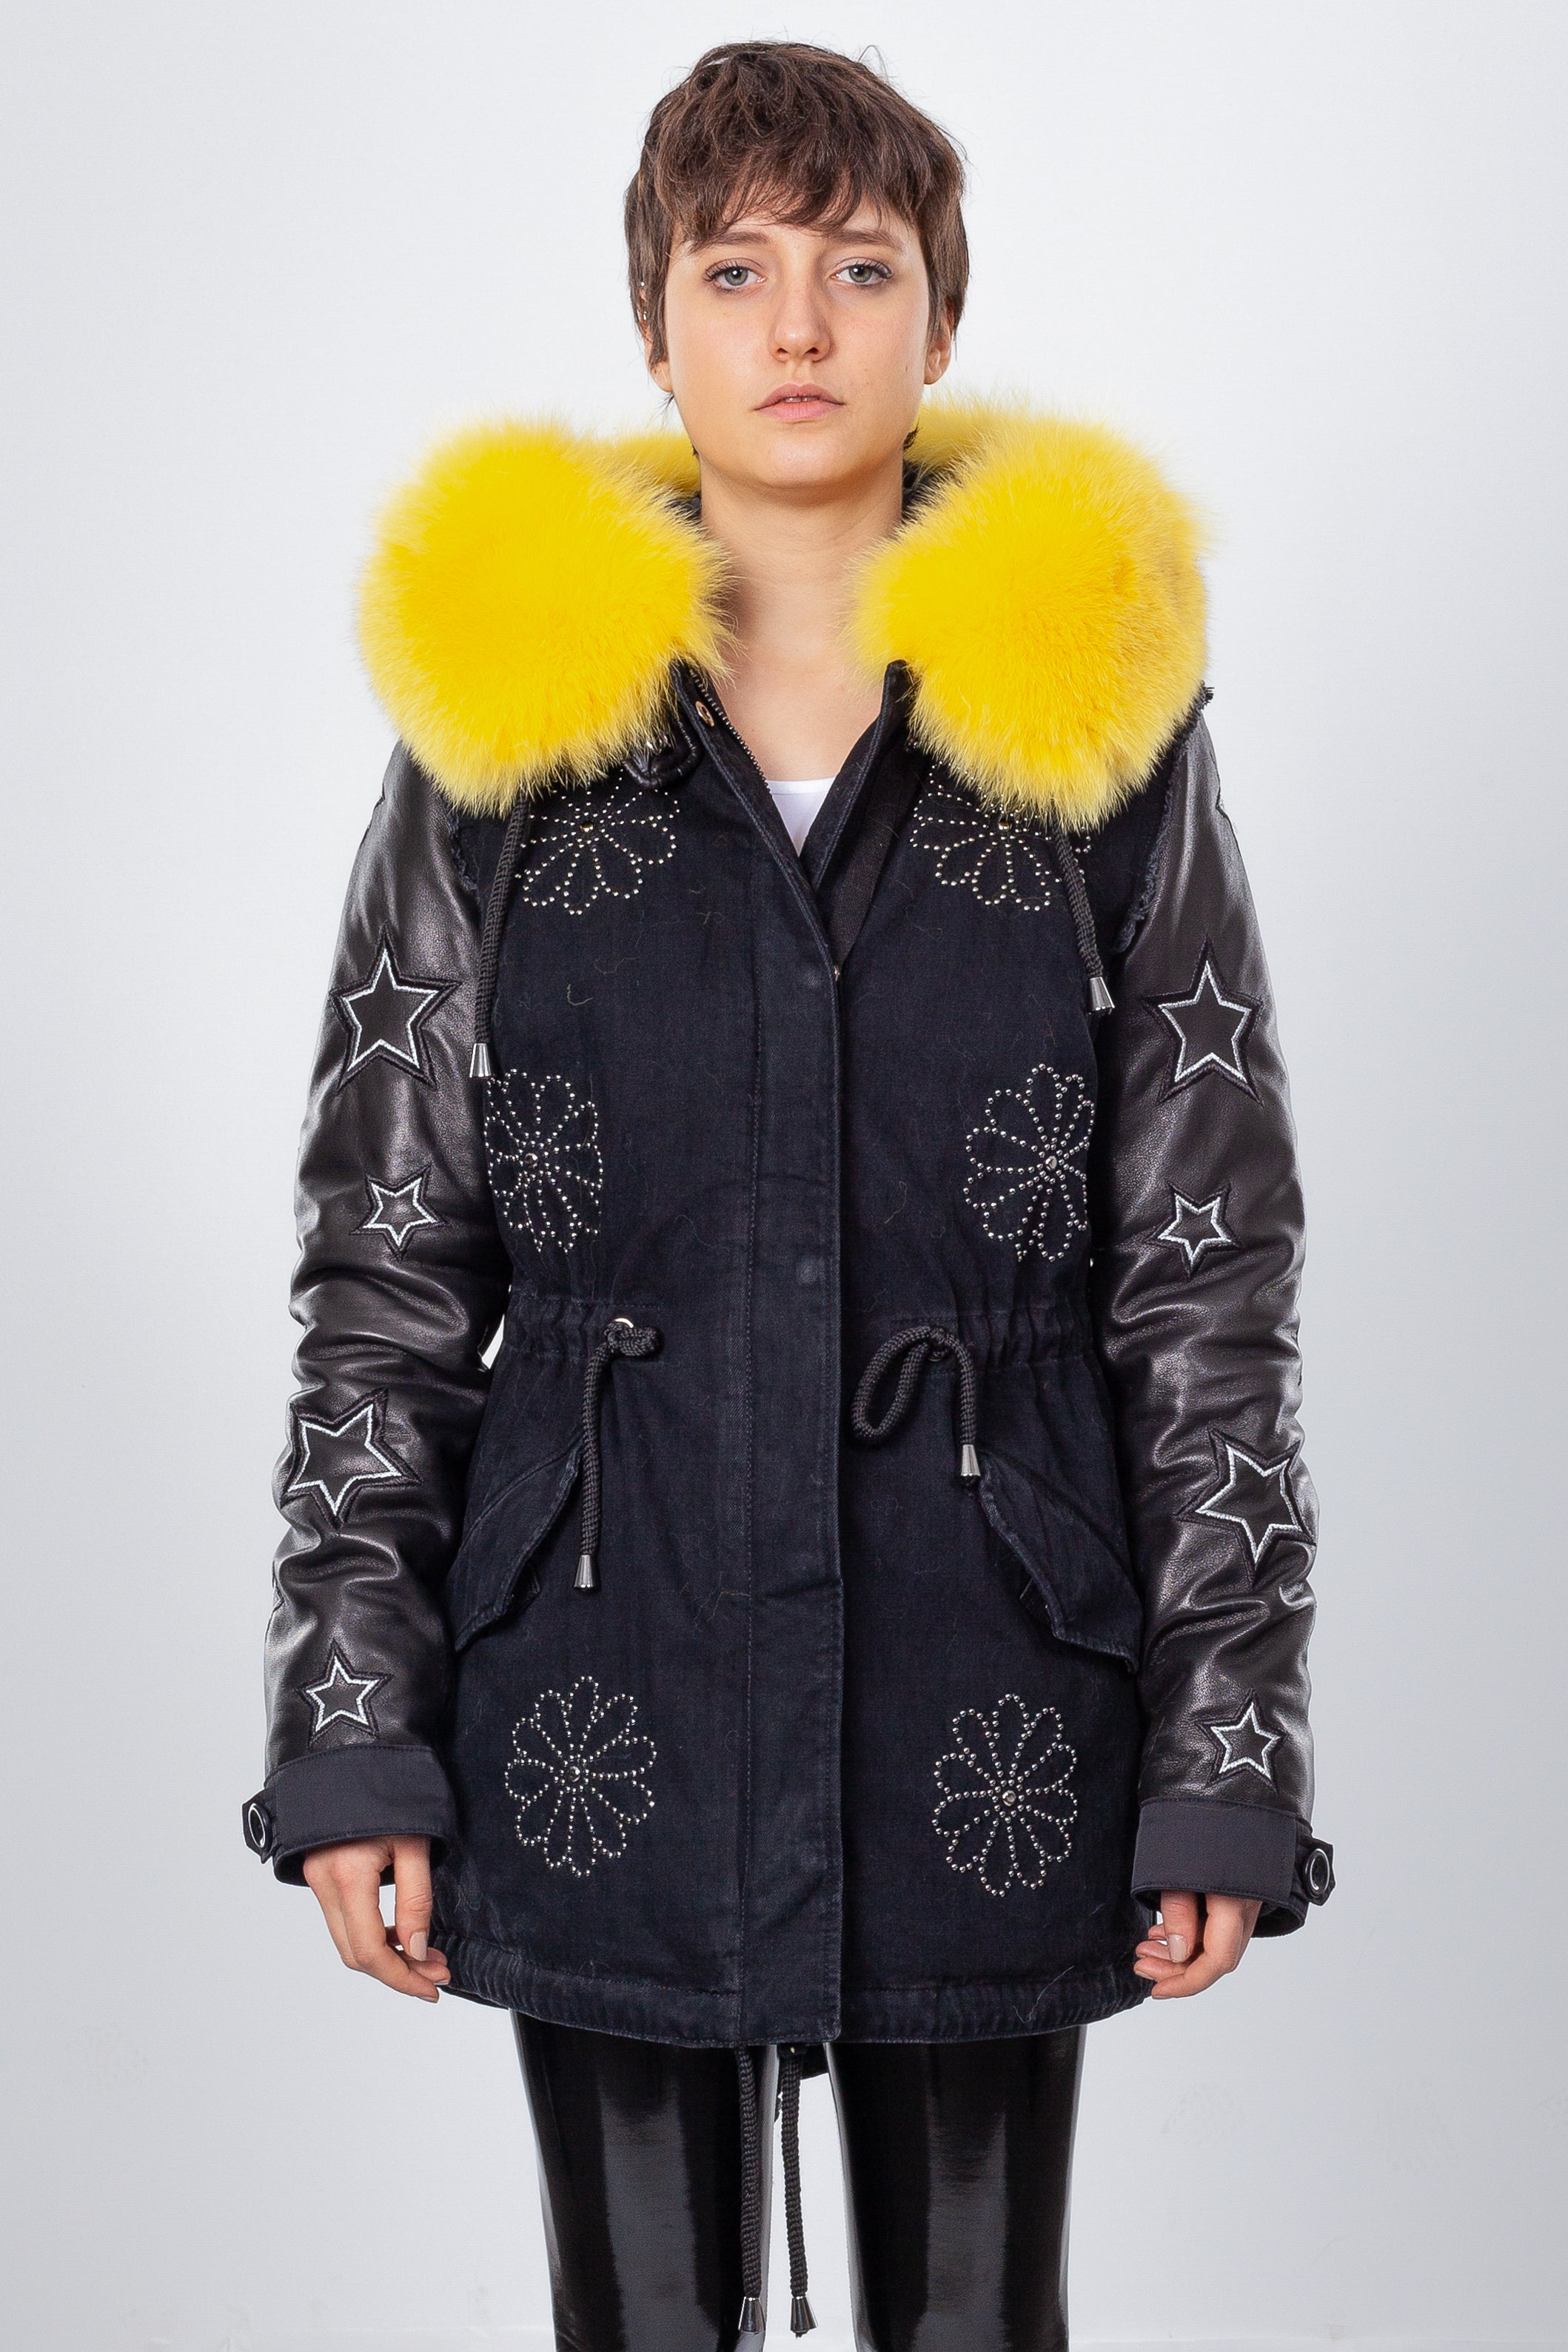 Black Denim Midi Parka Main Fabric is Waterproof / Raincoat Fabric With Yellow Blue Fox